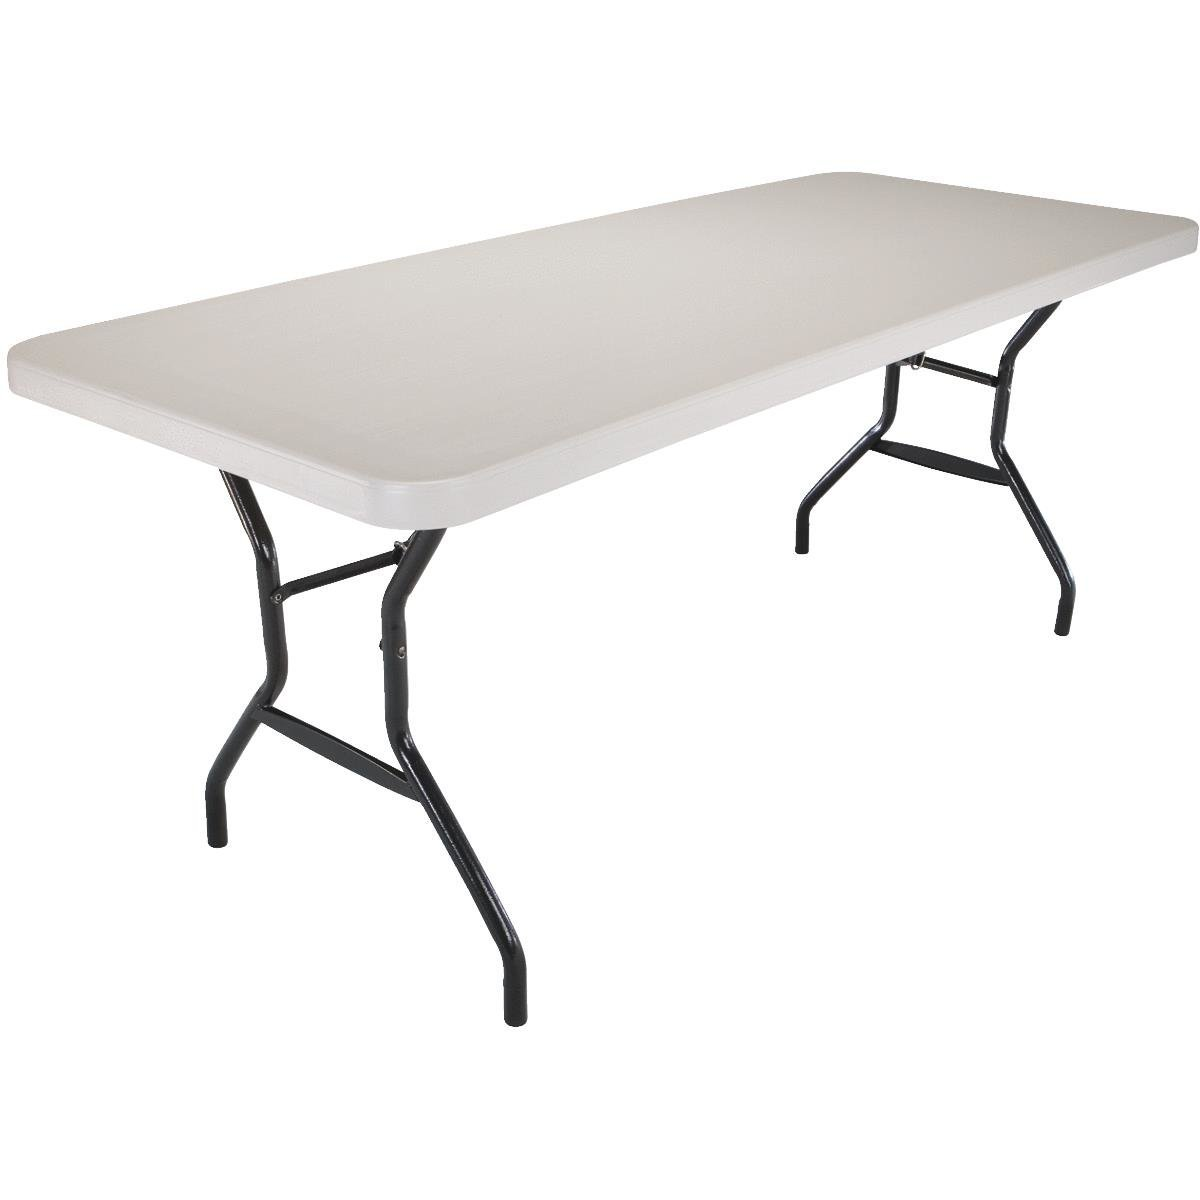 Costco Folding Tables | Foldable Table for Sale | Folding Table Walmart